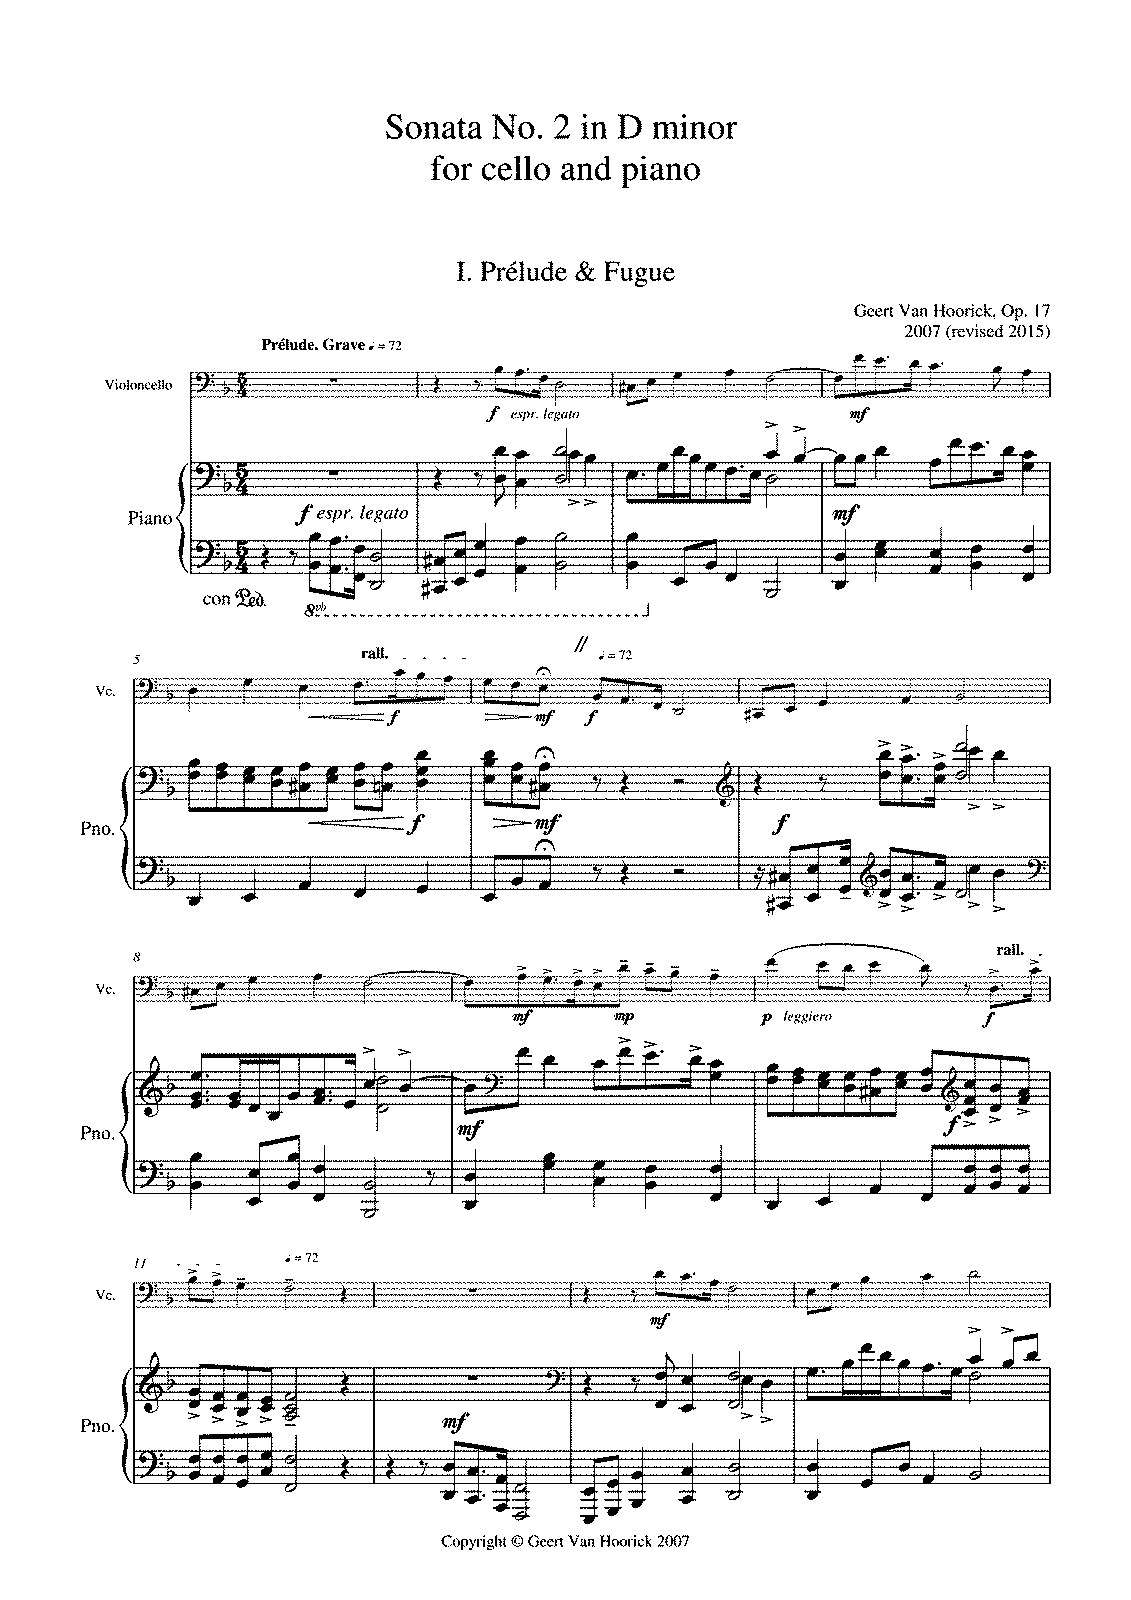 PMLP658136-017-123 cello sonata no 2 mvt 1 - piano.pdf